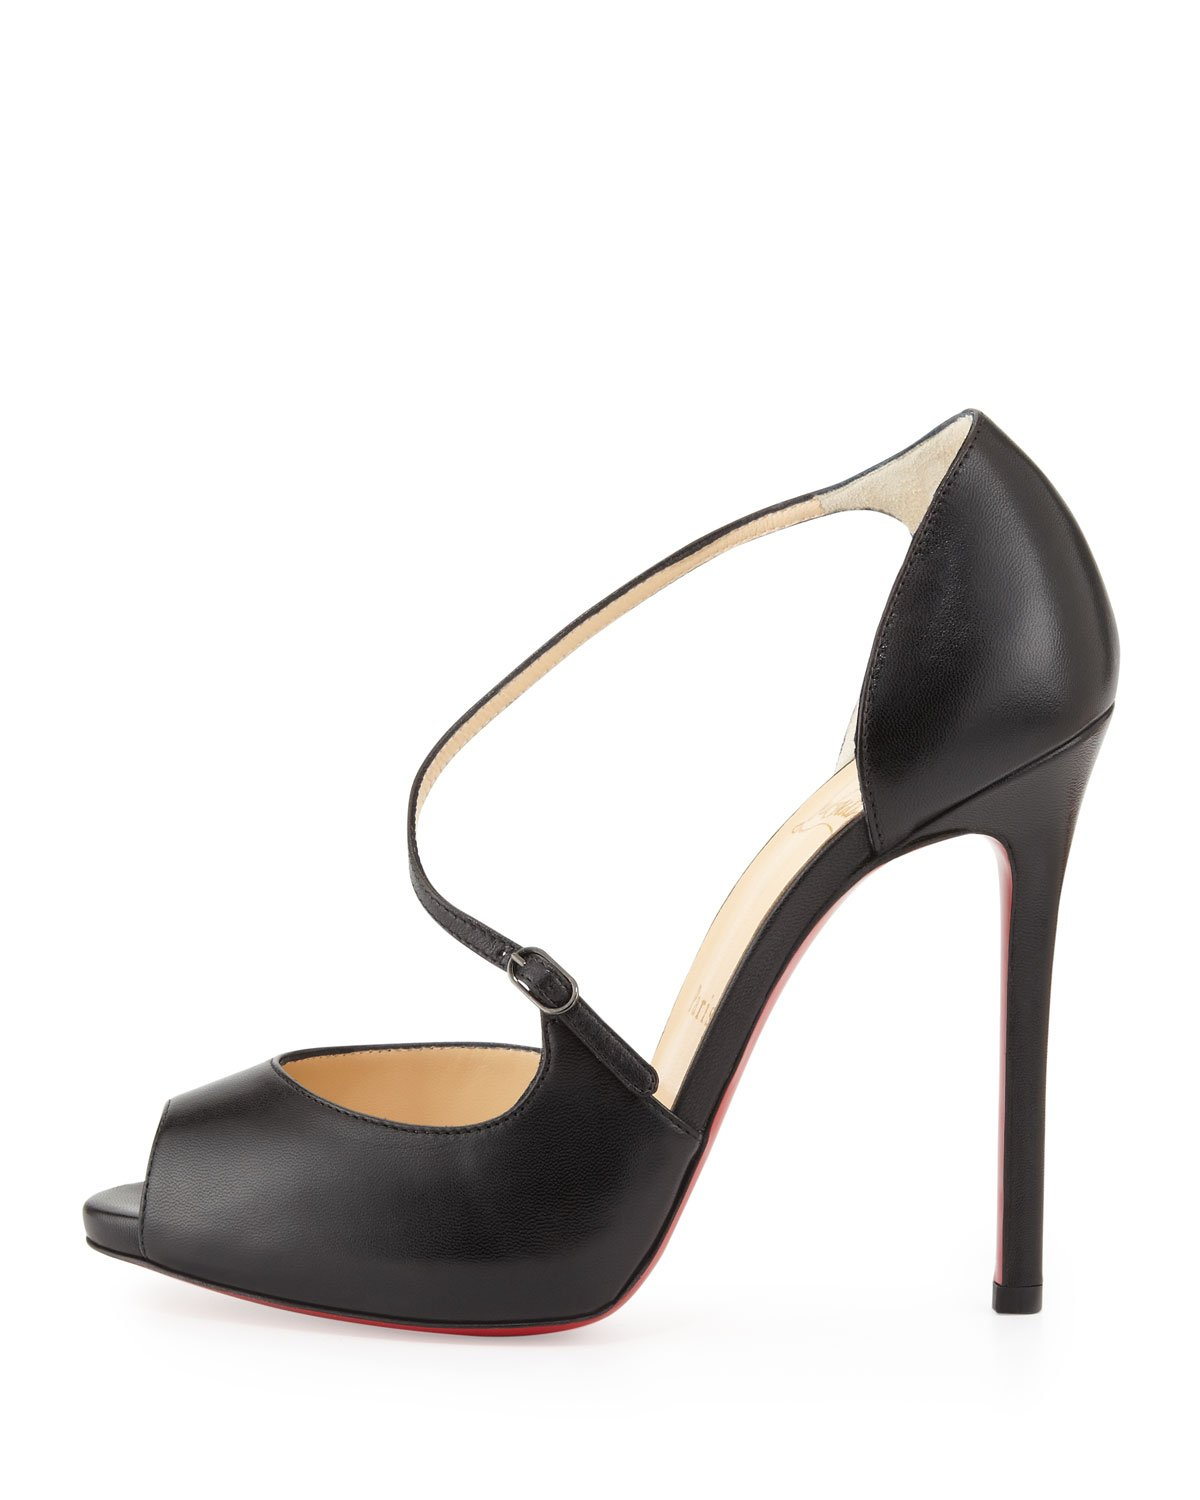 christian louboutin peep-toe slingback pumps Black satin bow ...